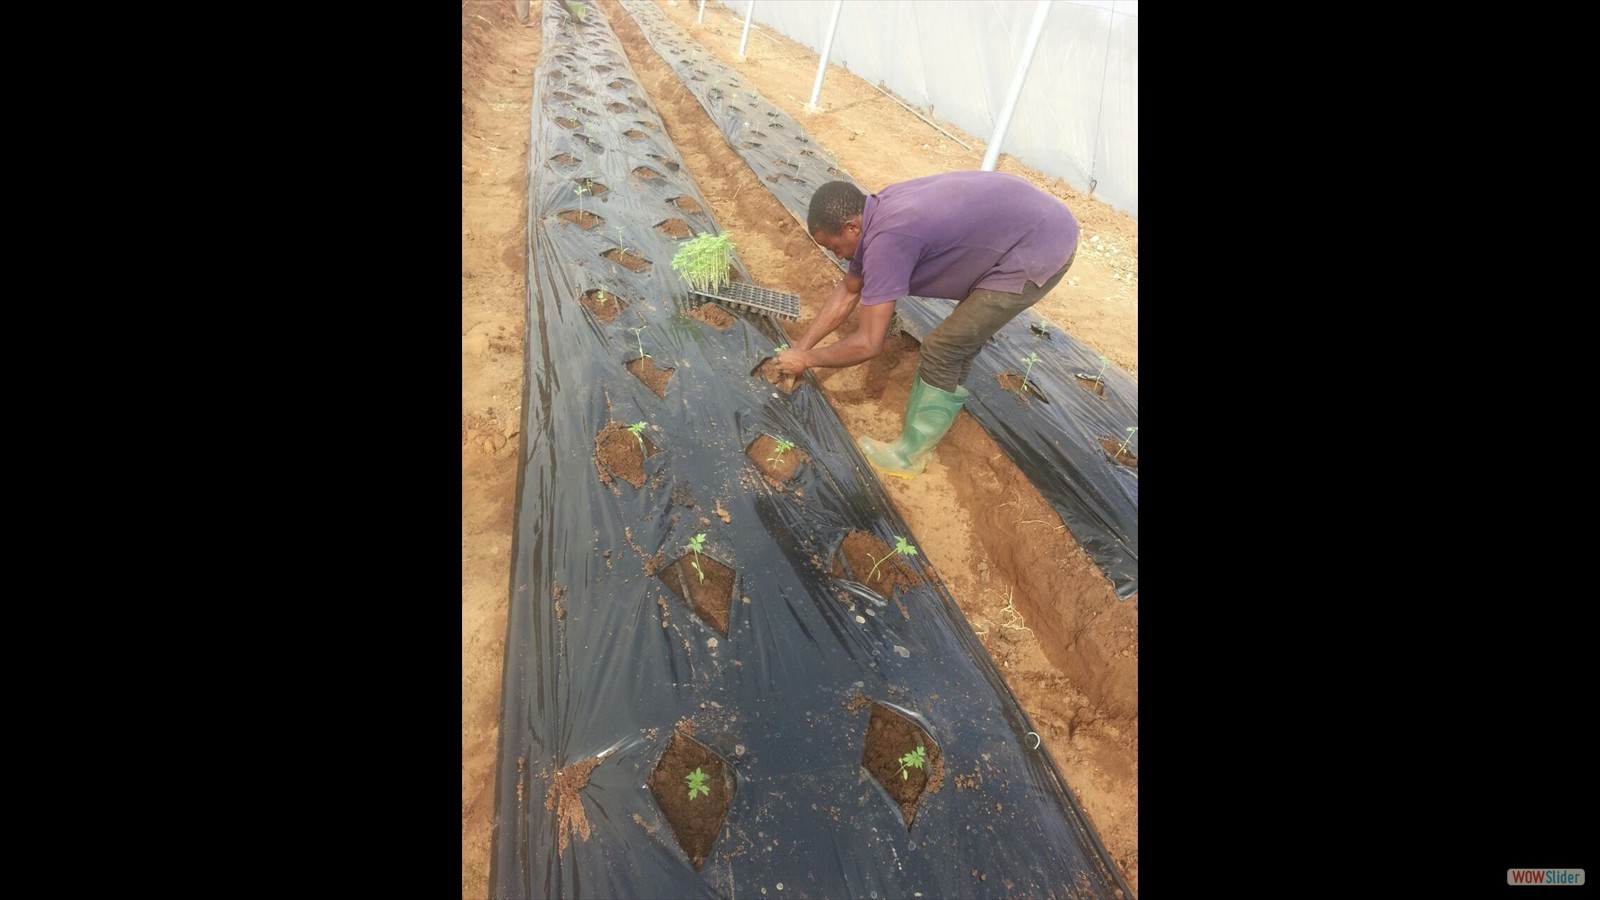 New batch of seedlings  are planted - Dec 2016